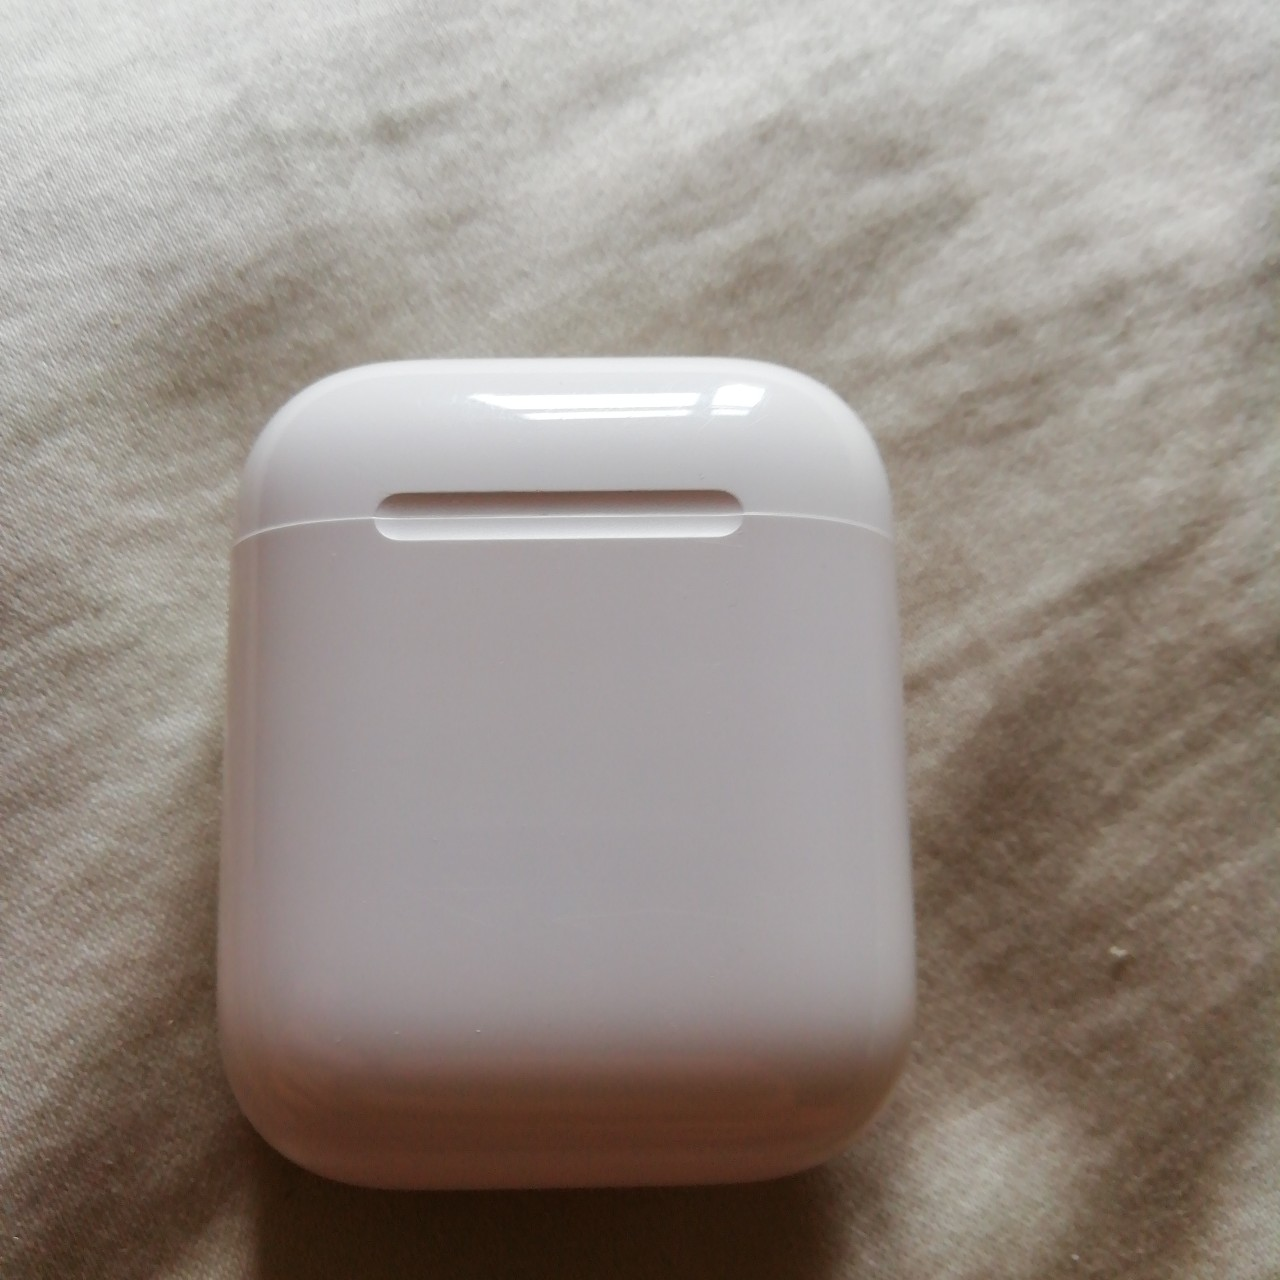 Authentic Apple Airpods Gen 1 With Box For Iphone Depop